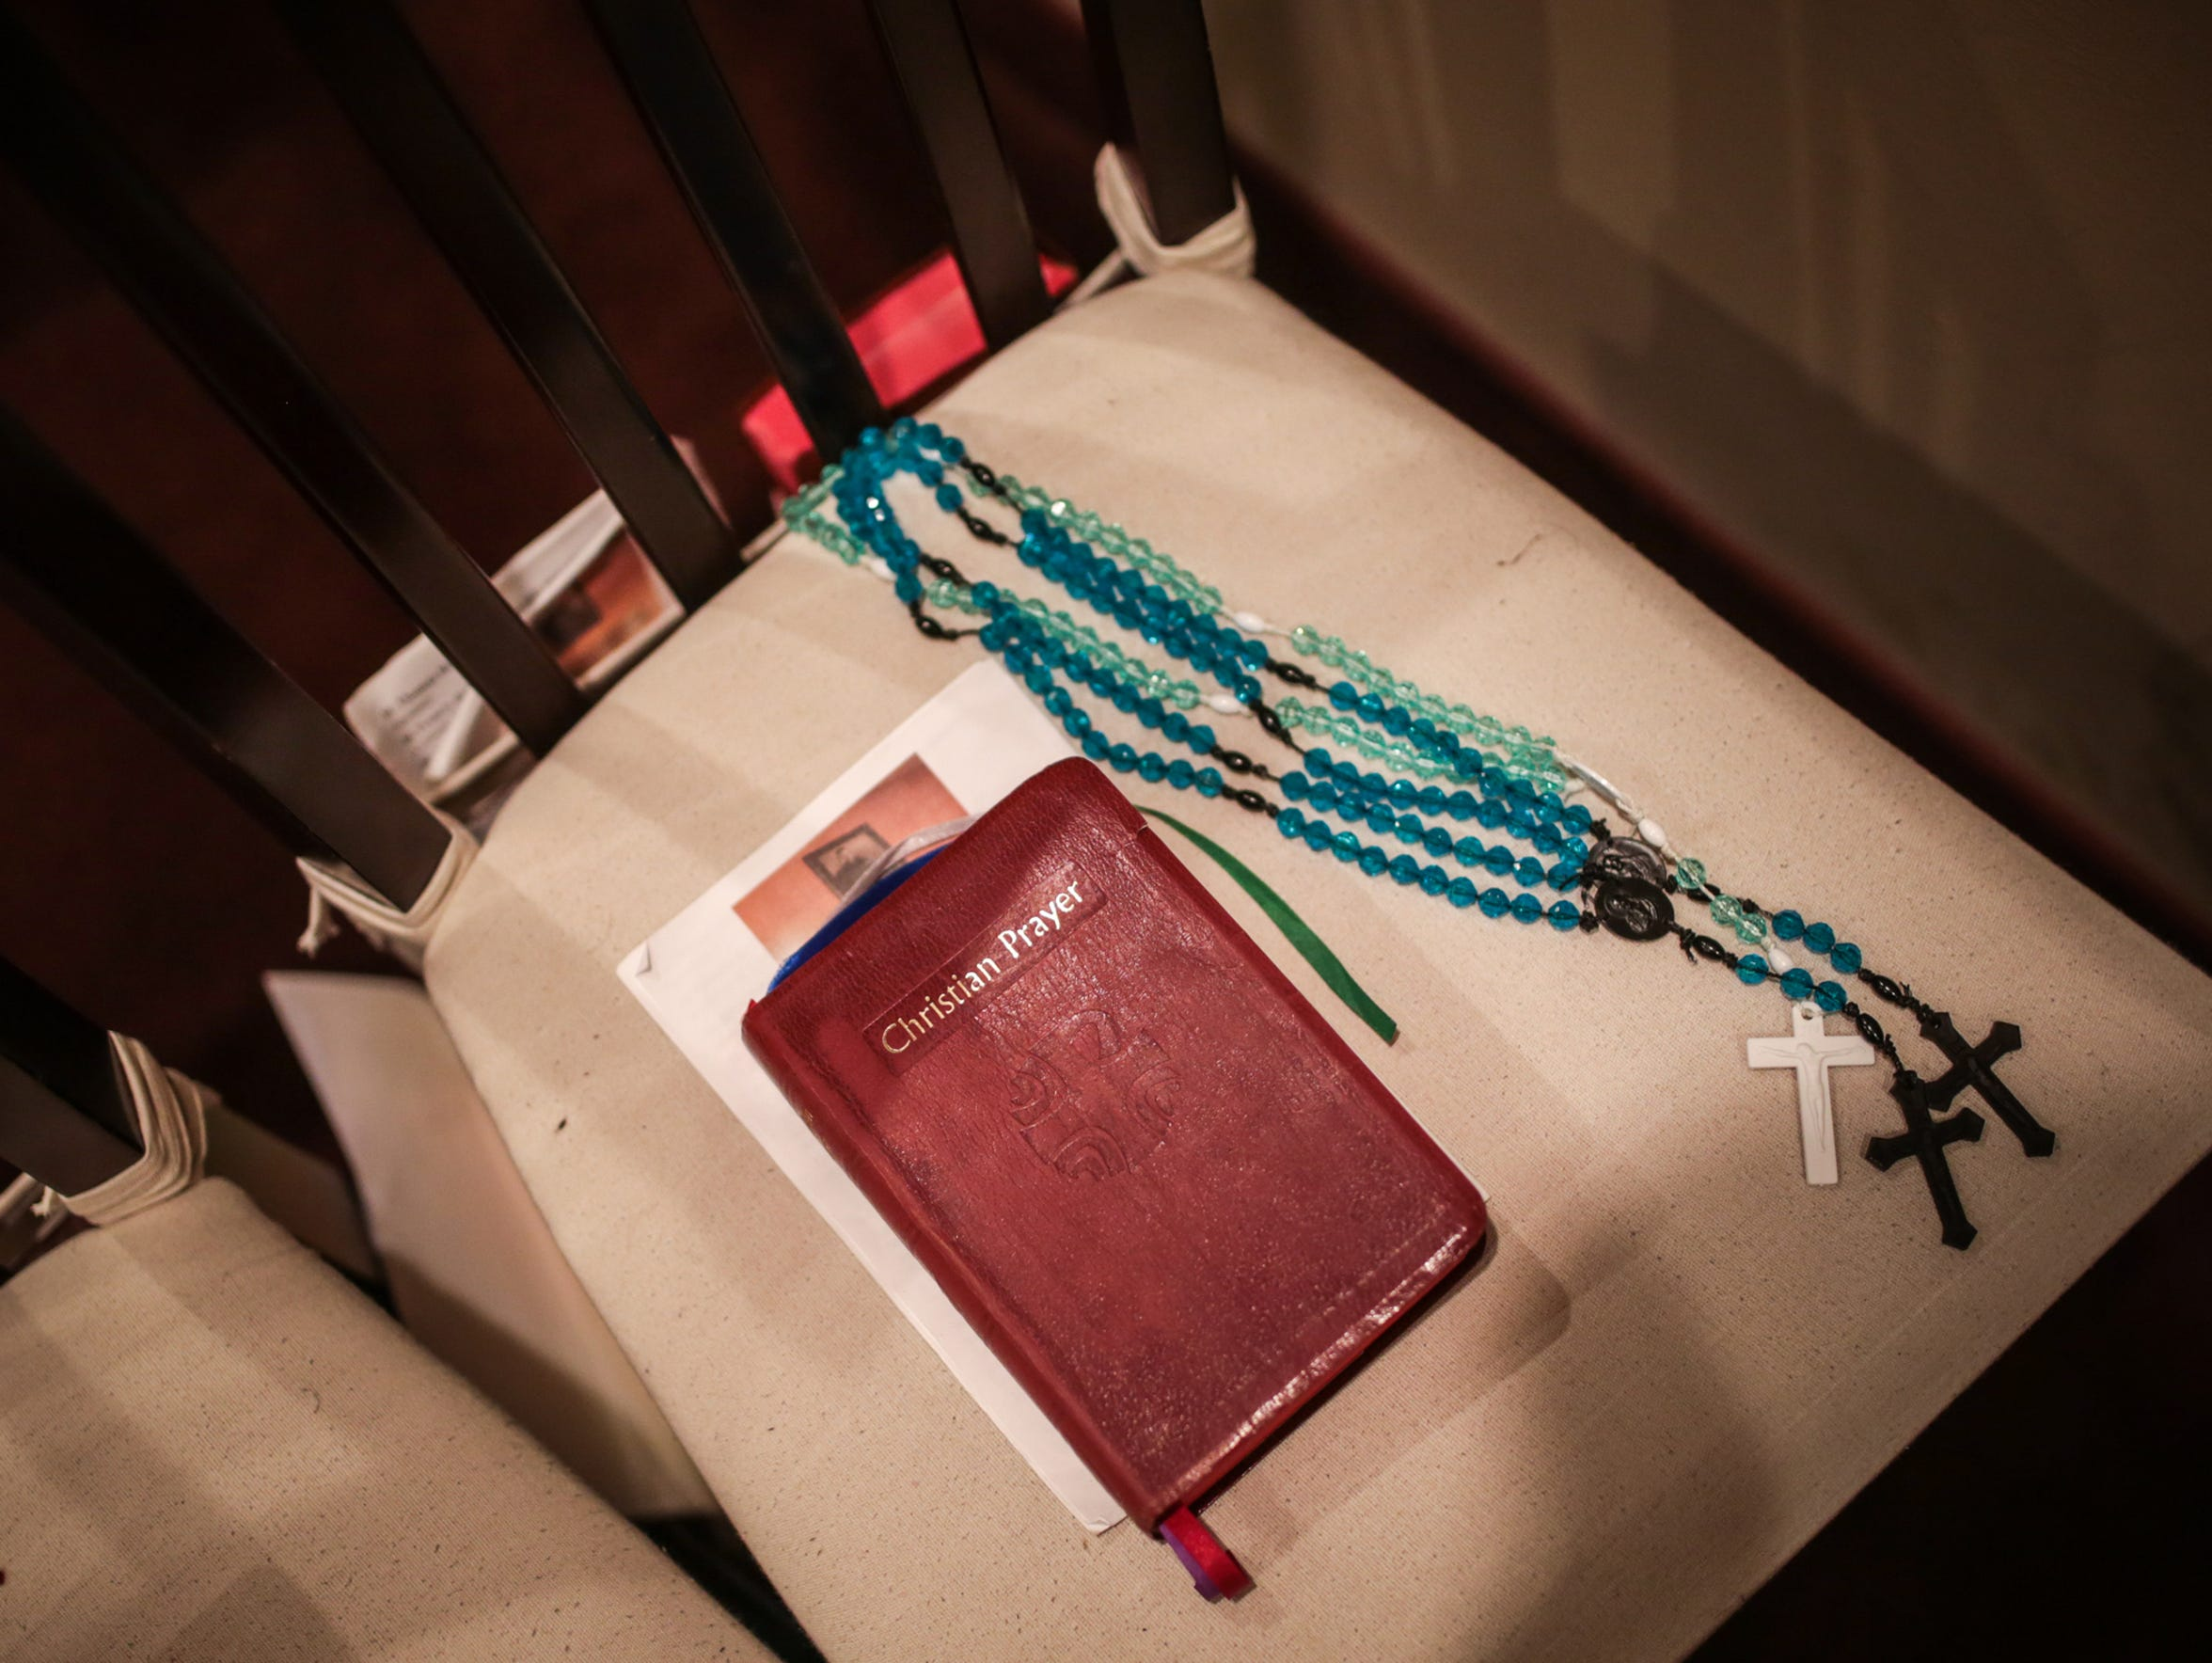 A Christian Prayer book and prying rosaries are seen